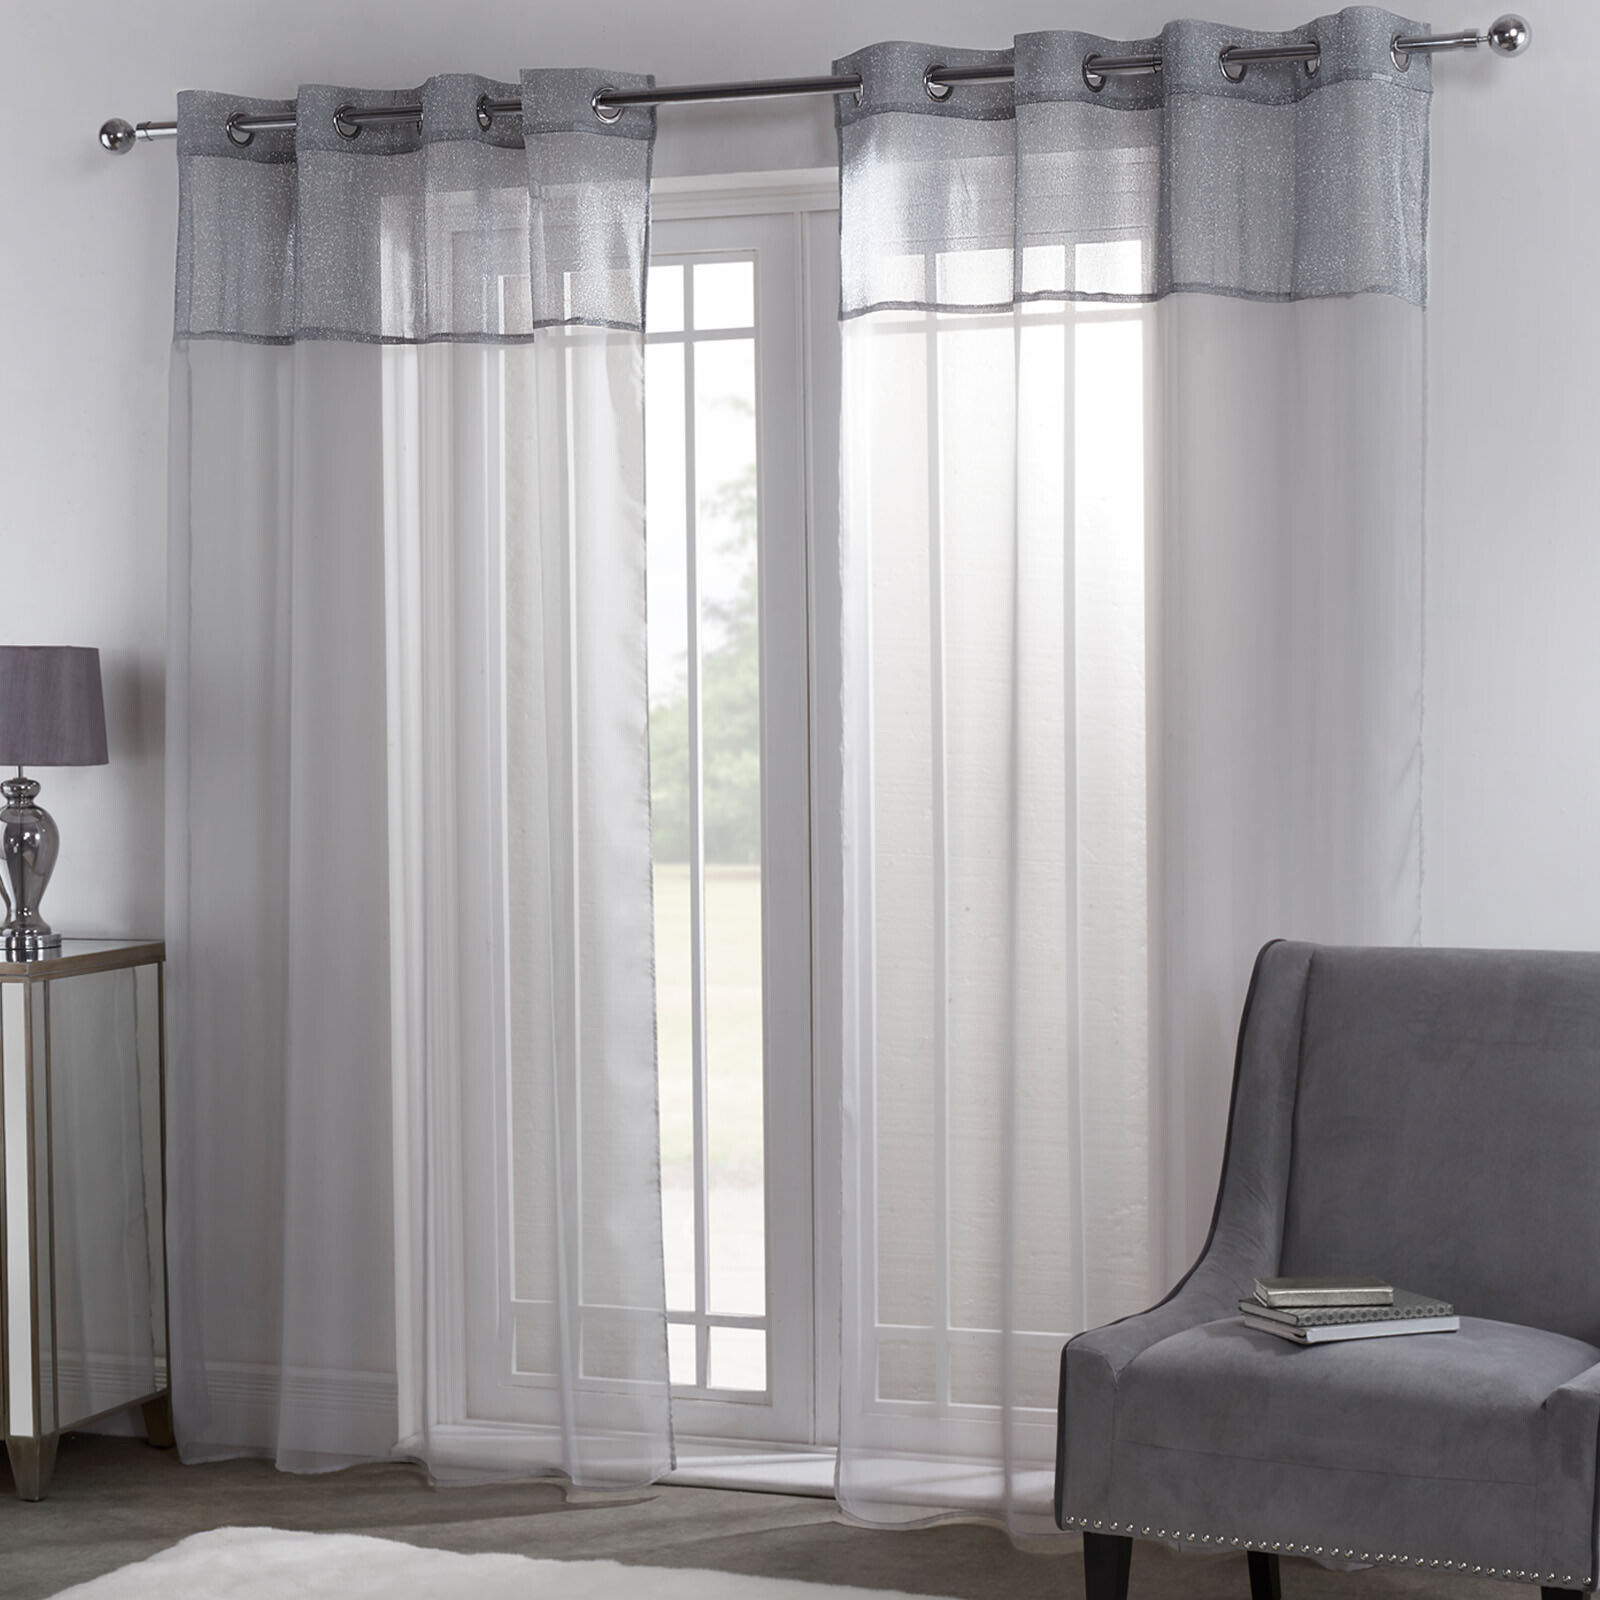 STRIPED GLITTER GREY//SILVER LINEN EYELET SPARKLE THICK VOILE NET CURTAIN PANEL//S